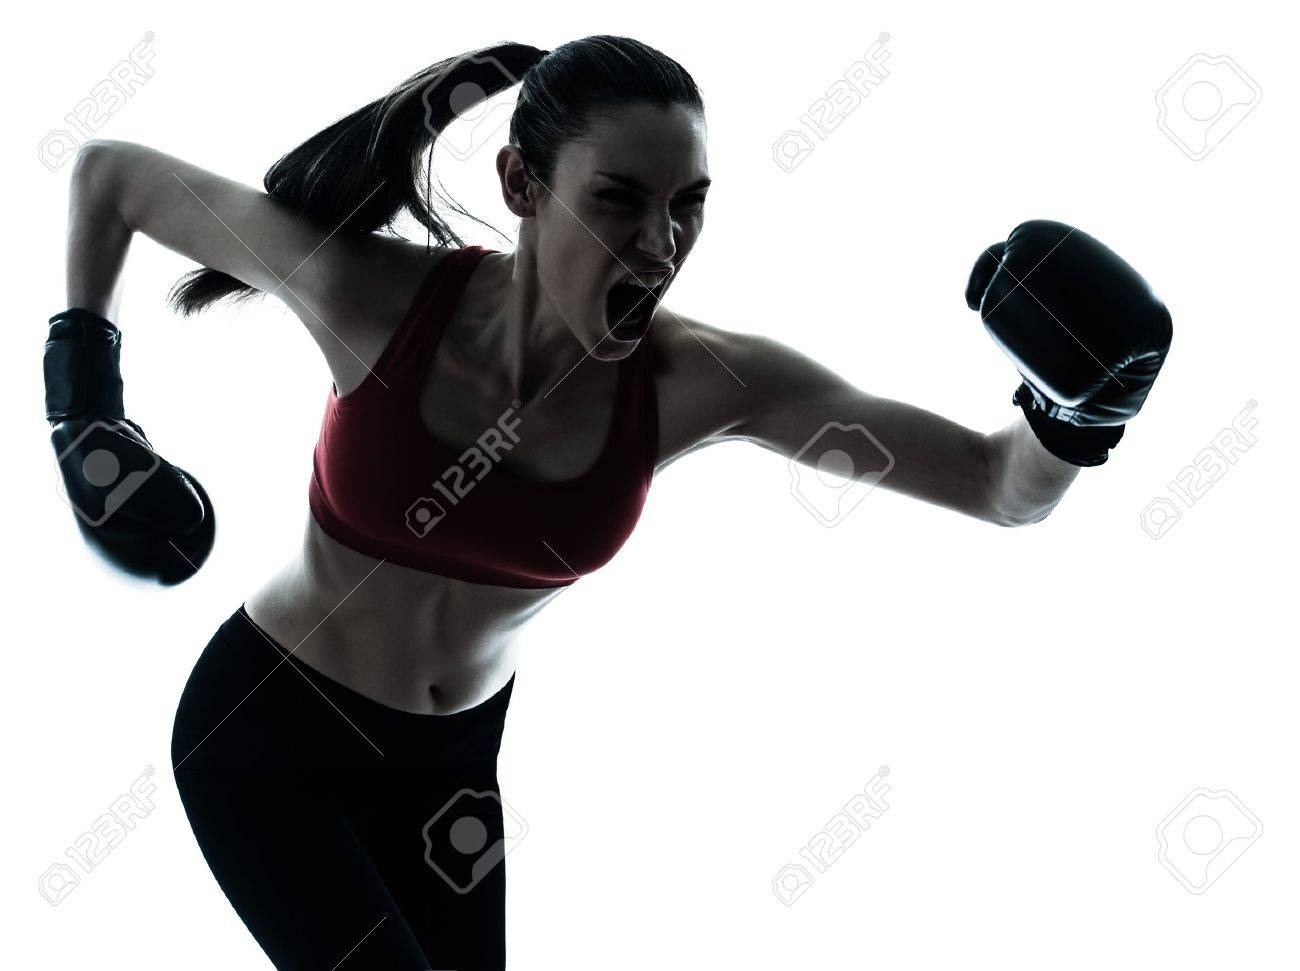 one caucasian woman boxing exercising in silhouette studio isolated isolated on white background Stock Photo - 13540114